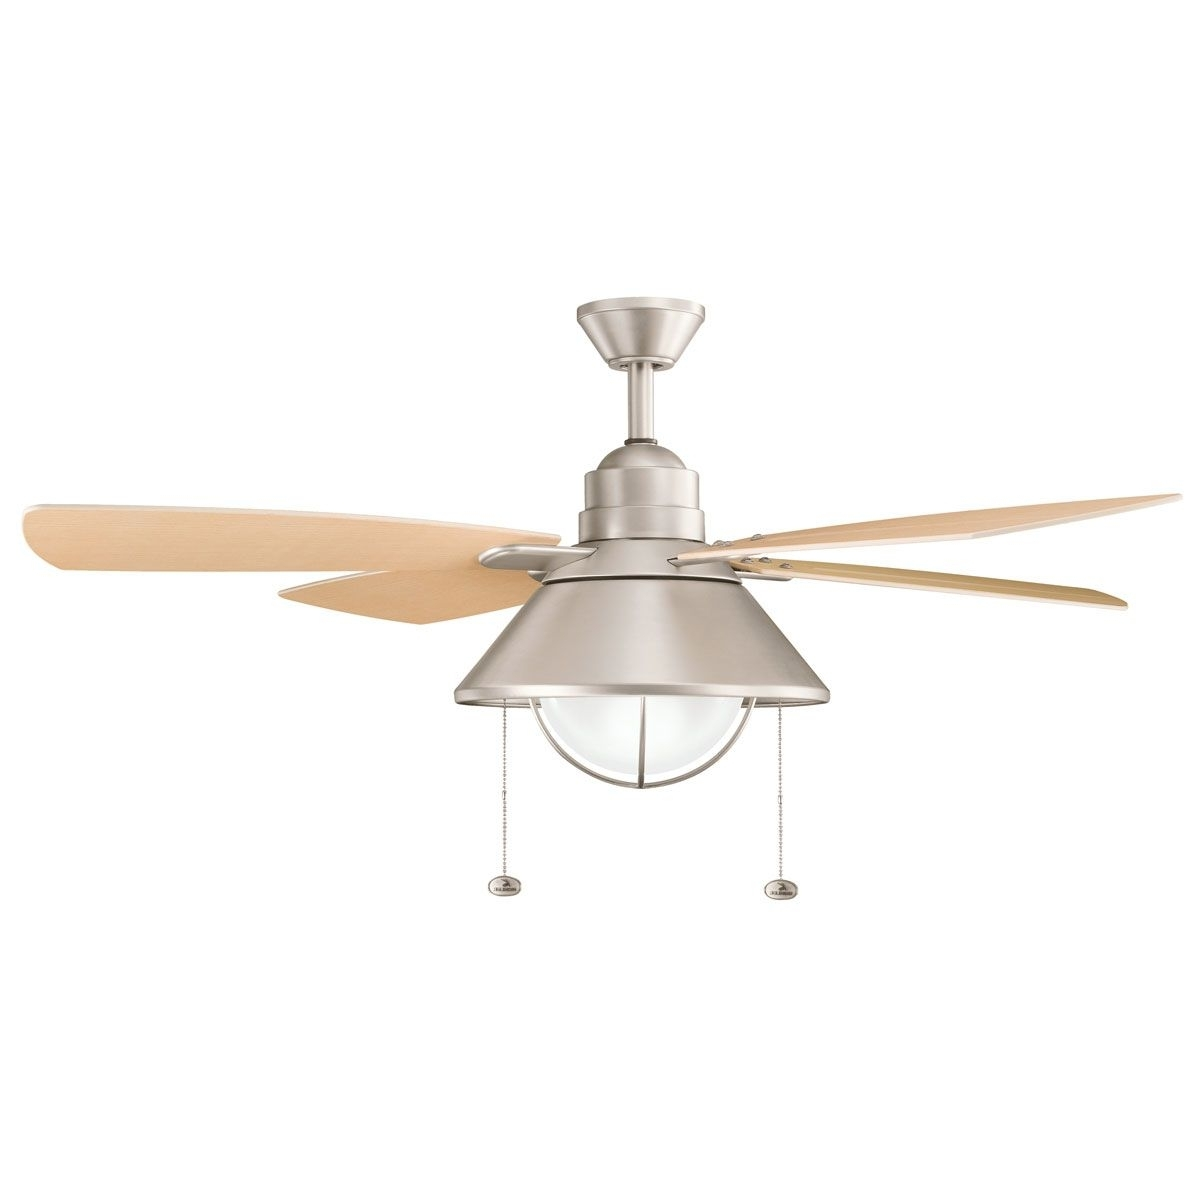 Well Known Kichler Fans Seaside Ceiling Fan In Brushed Nickel (View 16 of 20)